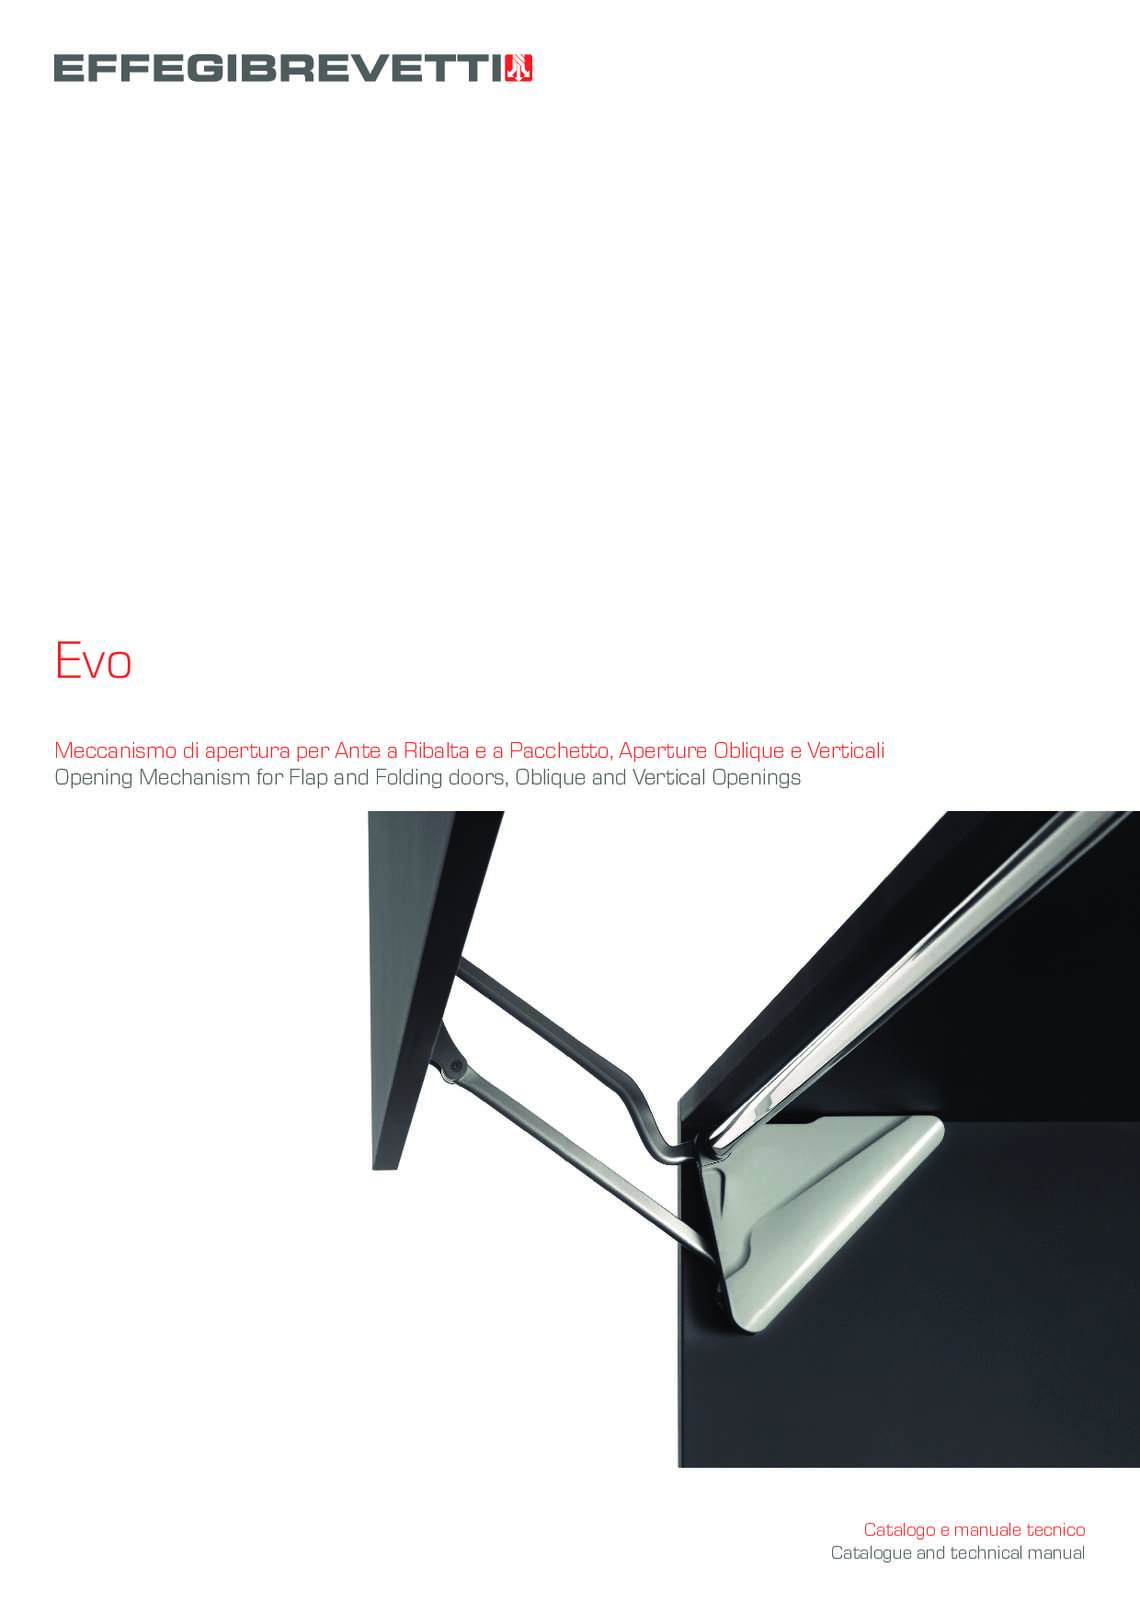 Evo - Opening Mechanism for Flap and Folding doors, Oblique and Vertical Openings